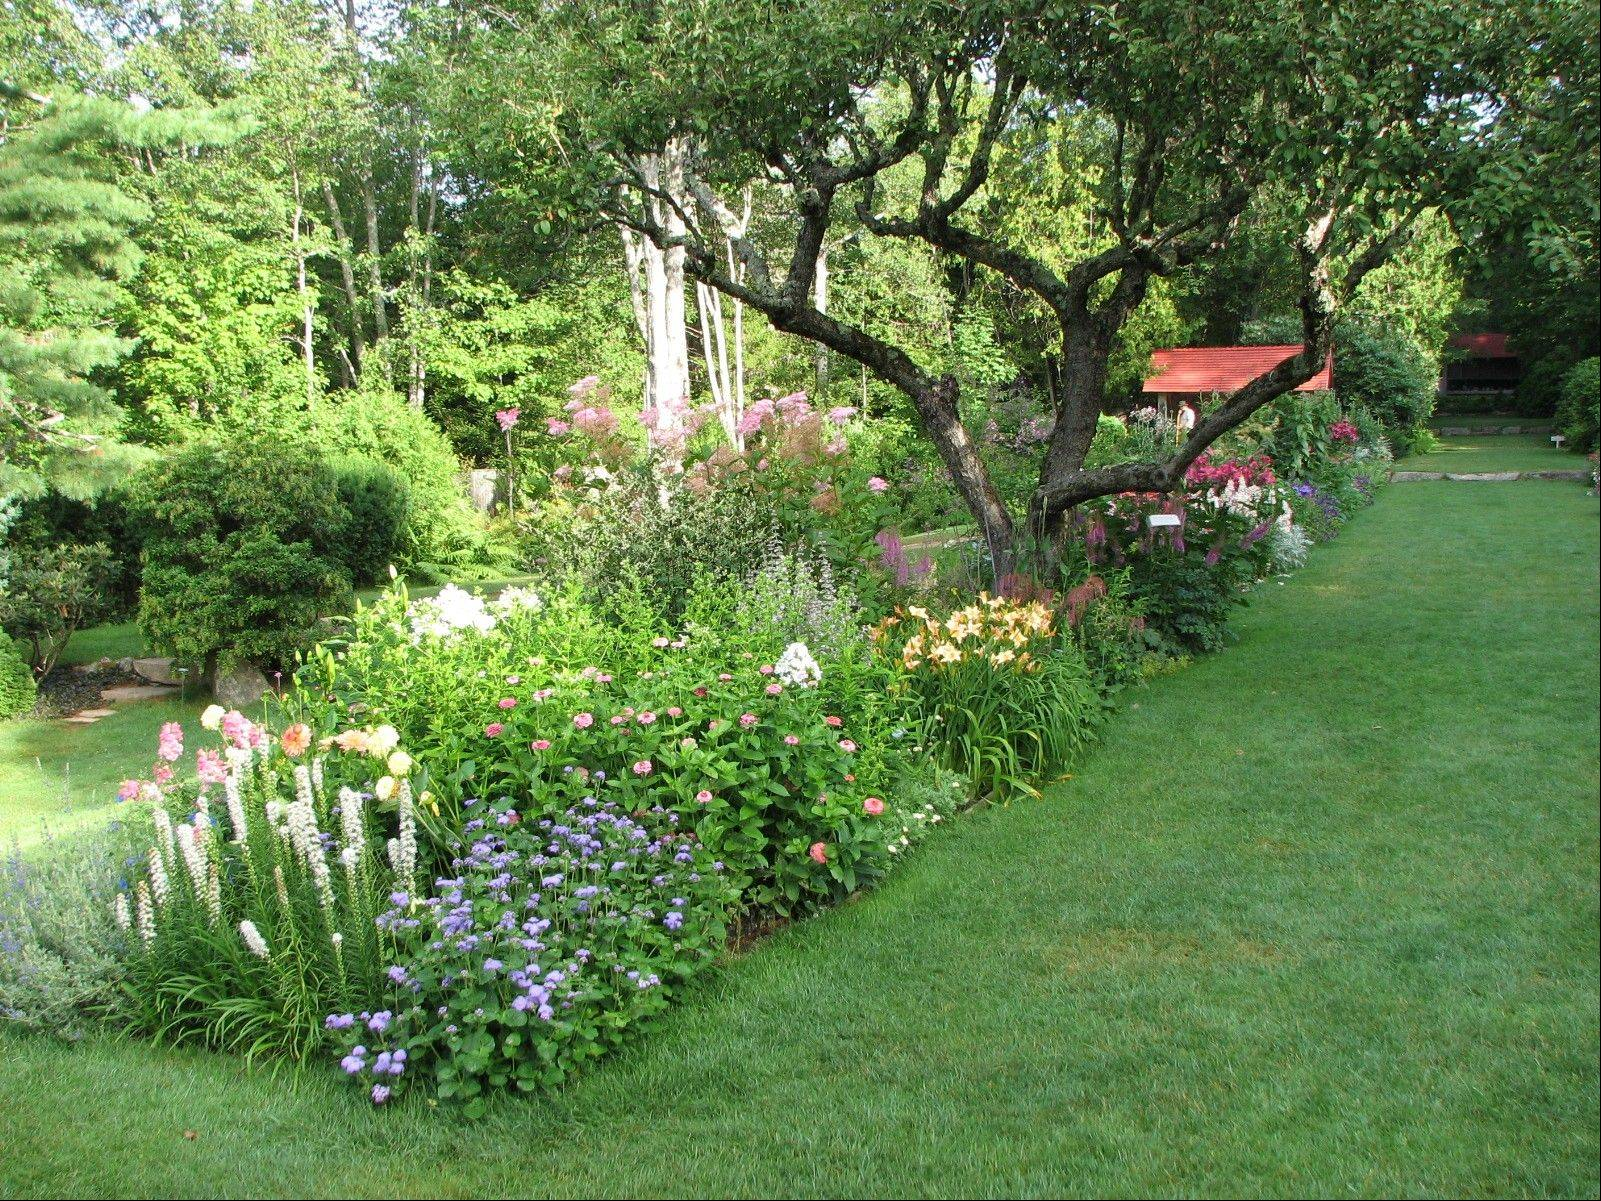 The collection at Thuya Garden in Northeast Harbor, Maine, includes plants from renowned landscape designer Beatrix Farrand, who created the nearby Abby Aldrich Rockefeller Garden, a privately owned garden that's open to the public just a few days a year.